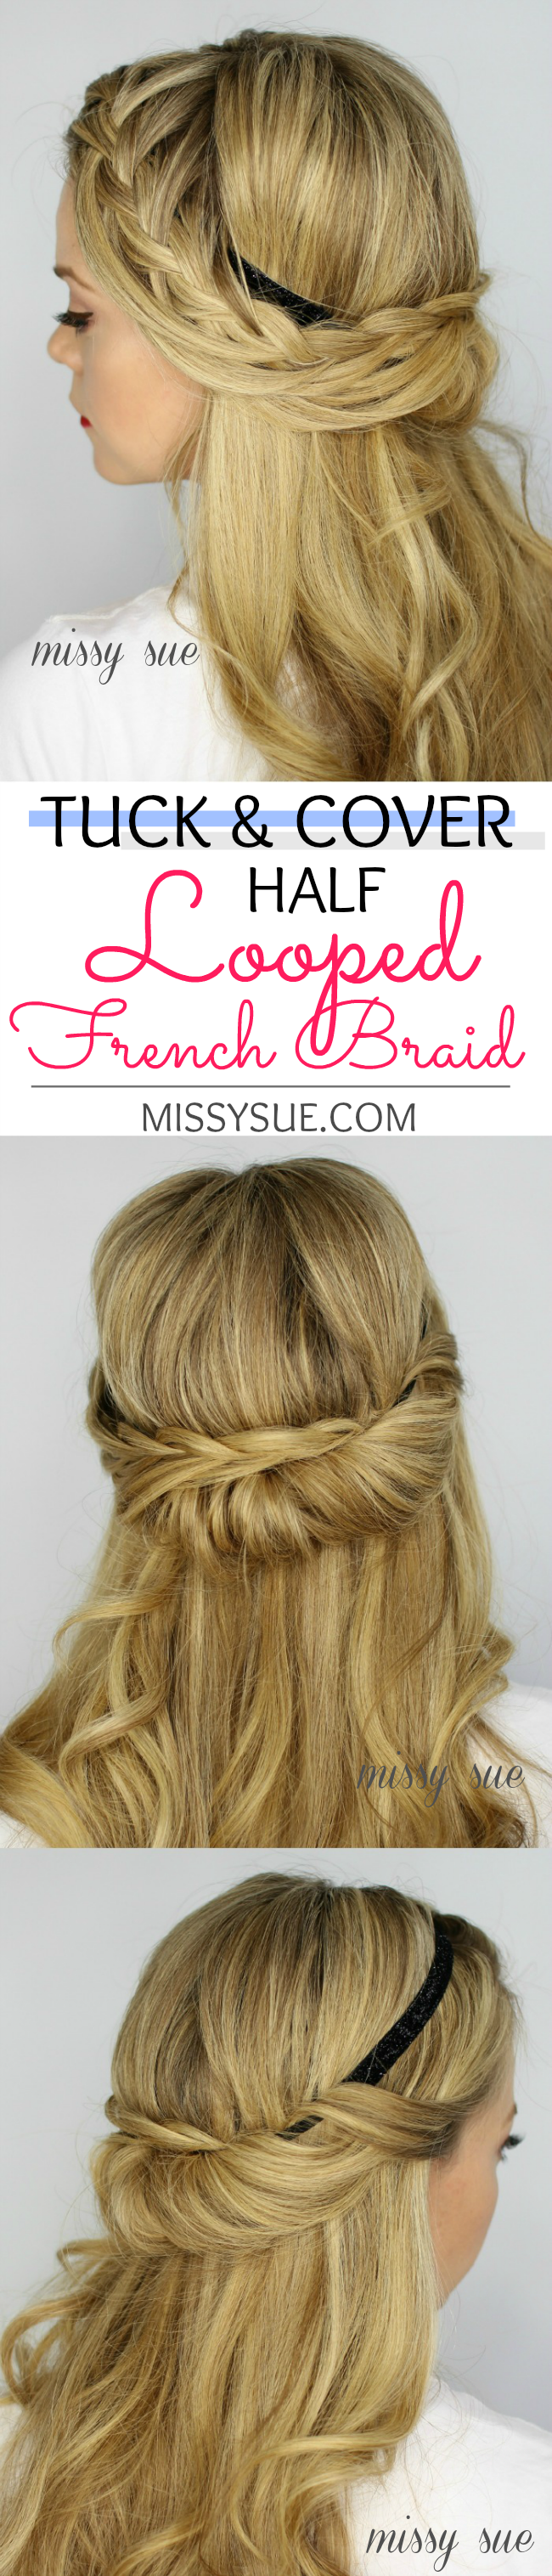 Tuck And Cover Half Looped French Braid French Braid Diy Hair Updos Hair Skin